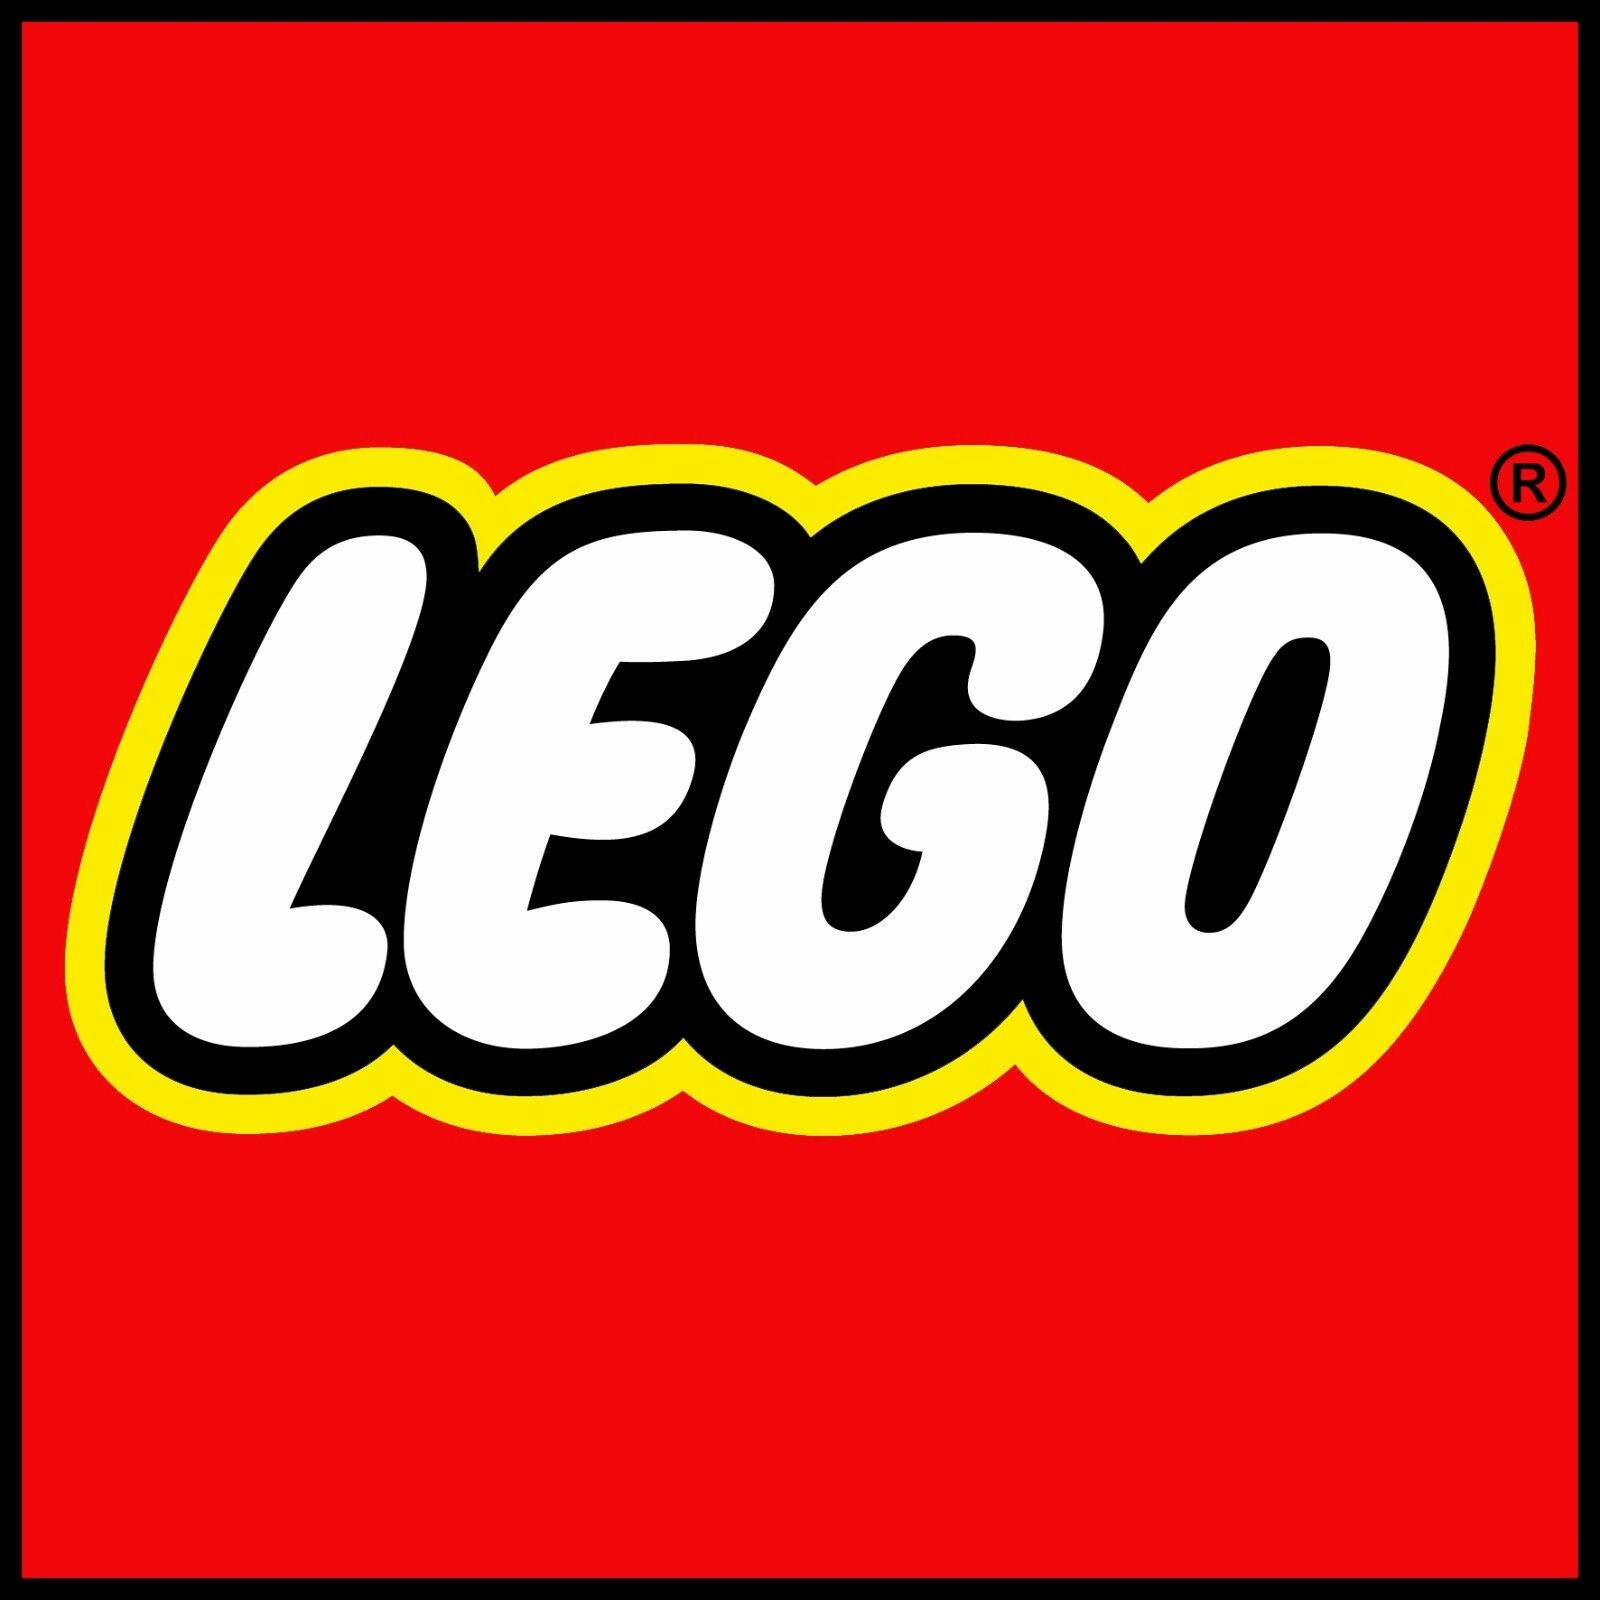 Lego Lot 2014   COMING SOON   TBU